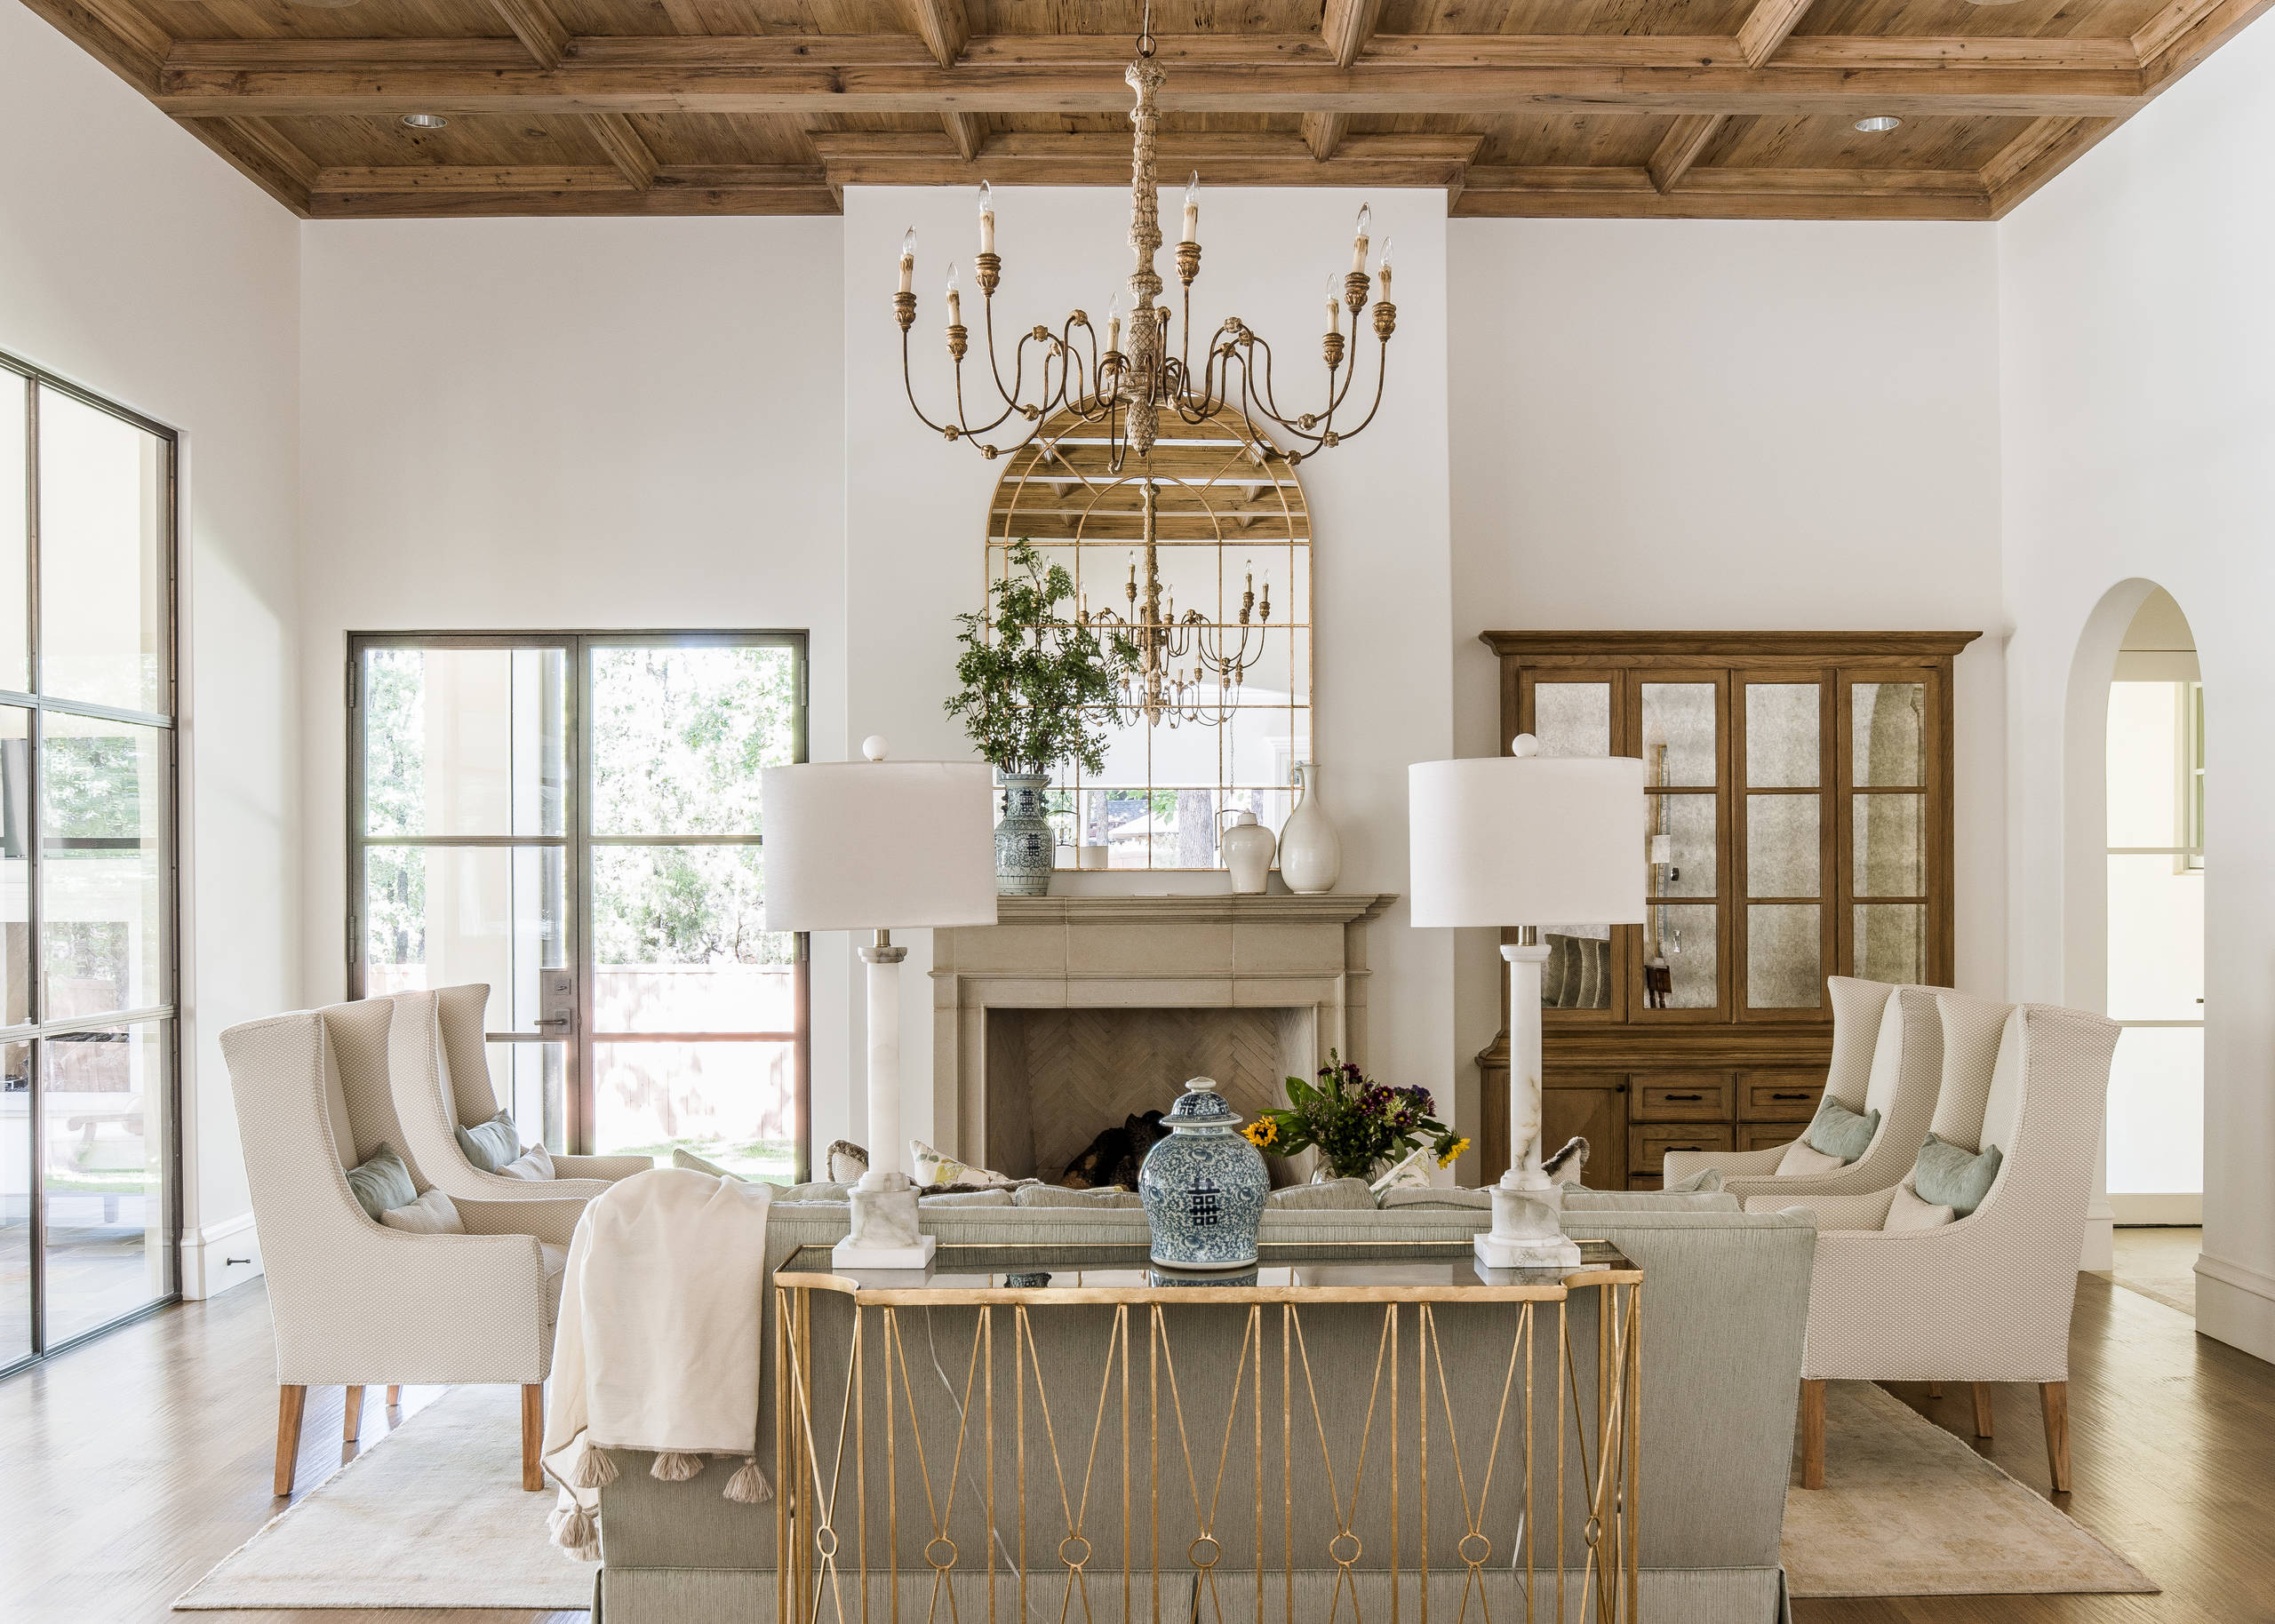 75 Beautiful French Country Living Room Pictures Ideas September 2020 Houzz